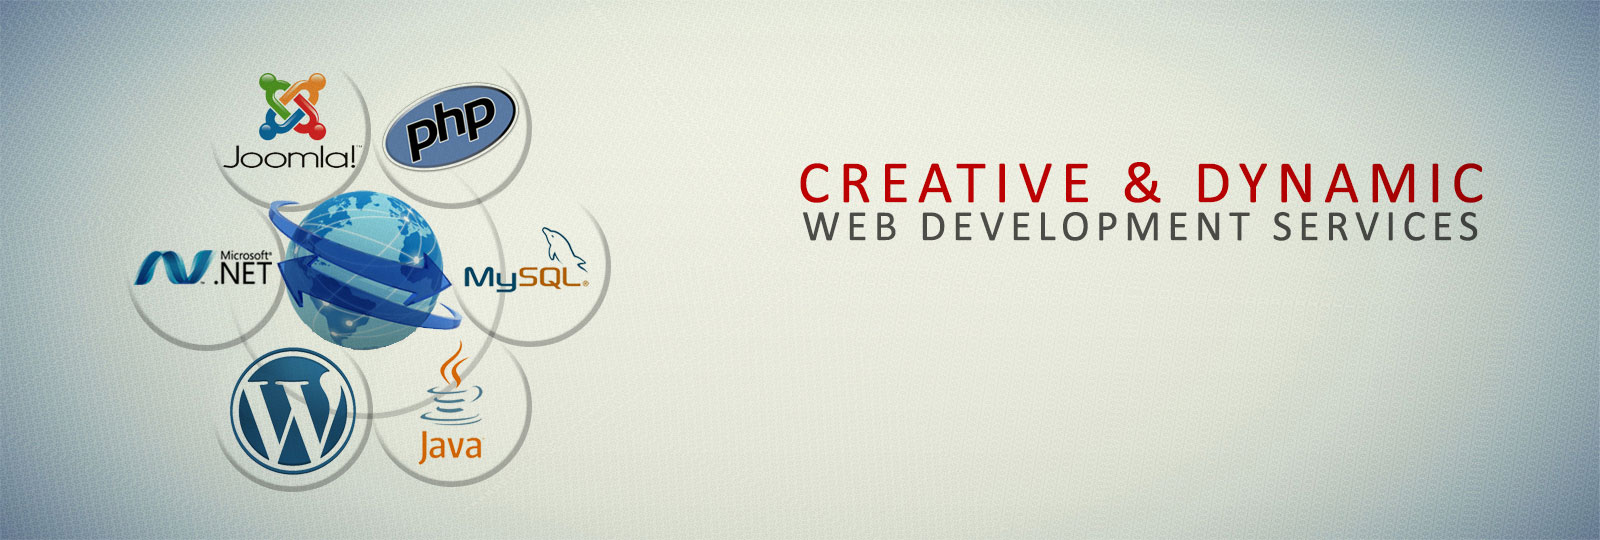 Creative and dynamic web development by AltWare